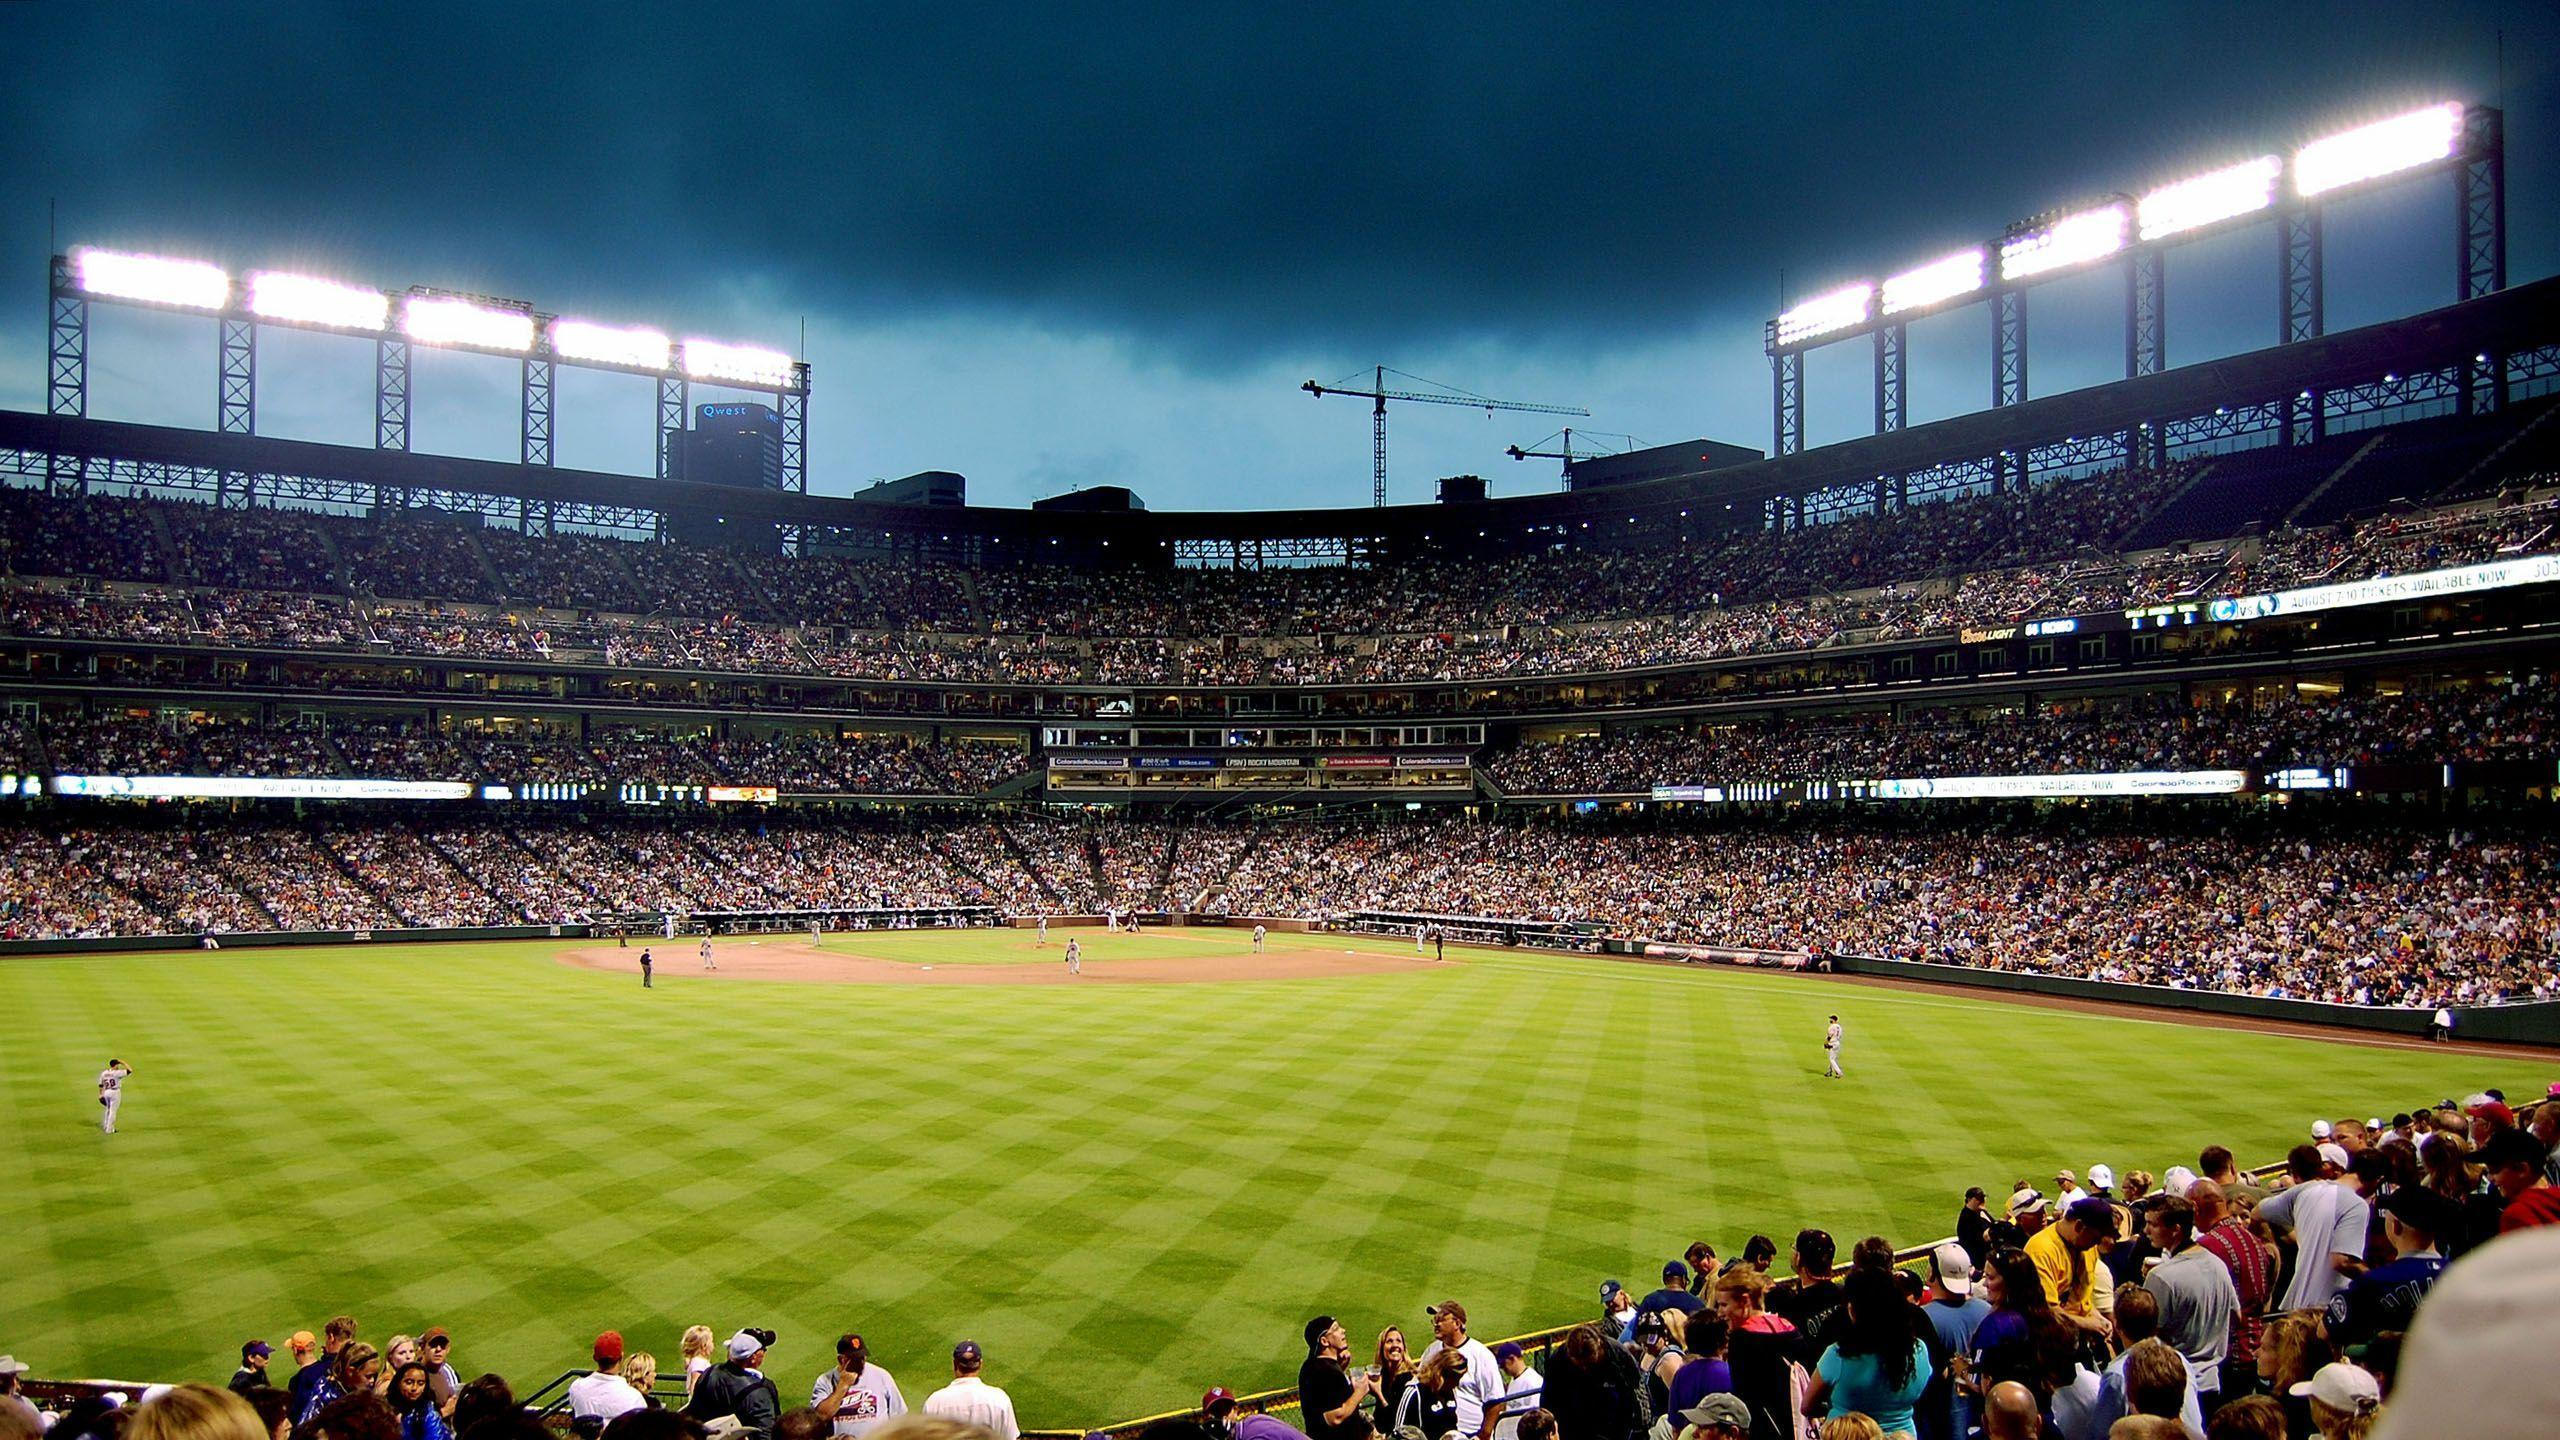 mlb baseball fields wallpaper - photo #13